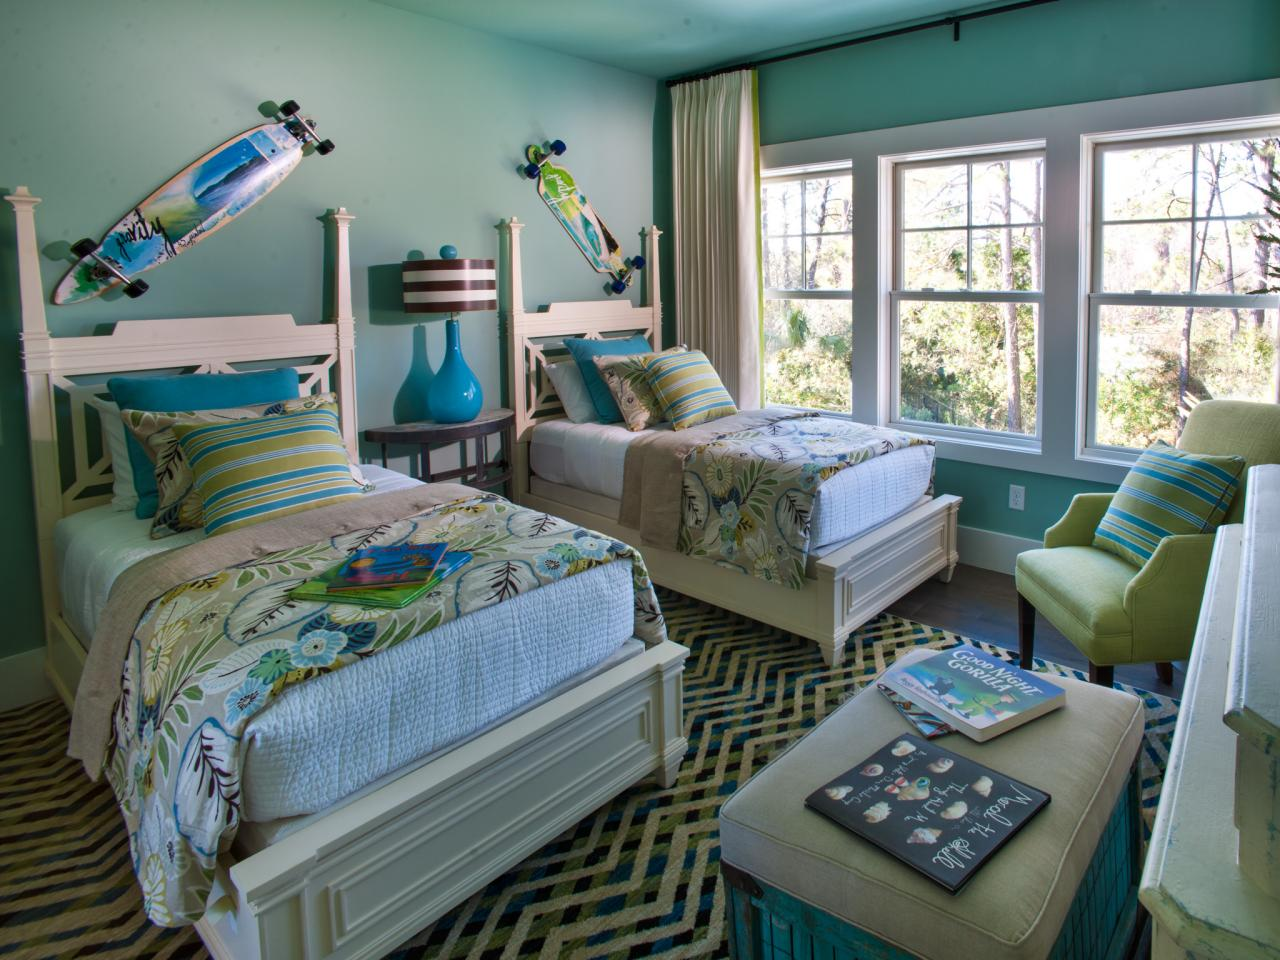 HGTV Smart Home 2013: Kids Bedroom Pictures